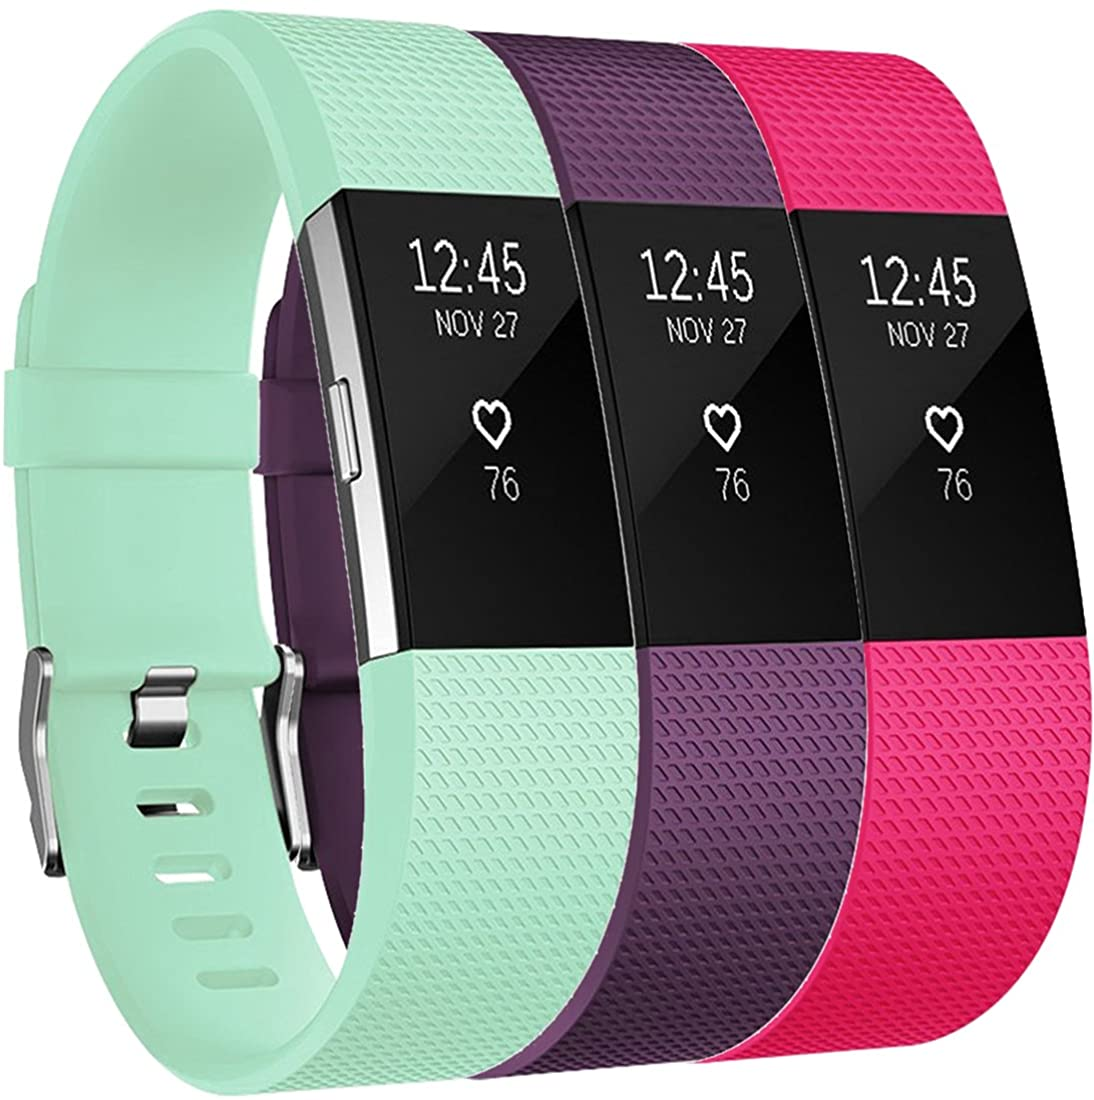 Amzpas Bands Compatible with Fitbit Charge 2 Bands Small Large Adjustable Replacement Accessories Wristbands for Women Men (Rose & Plum & Teal, Large)